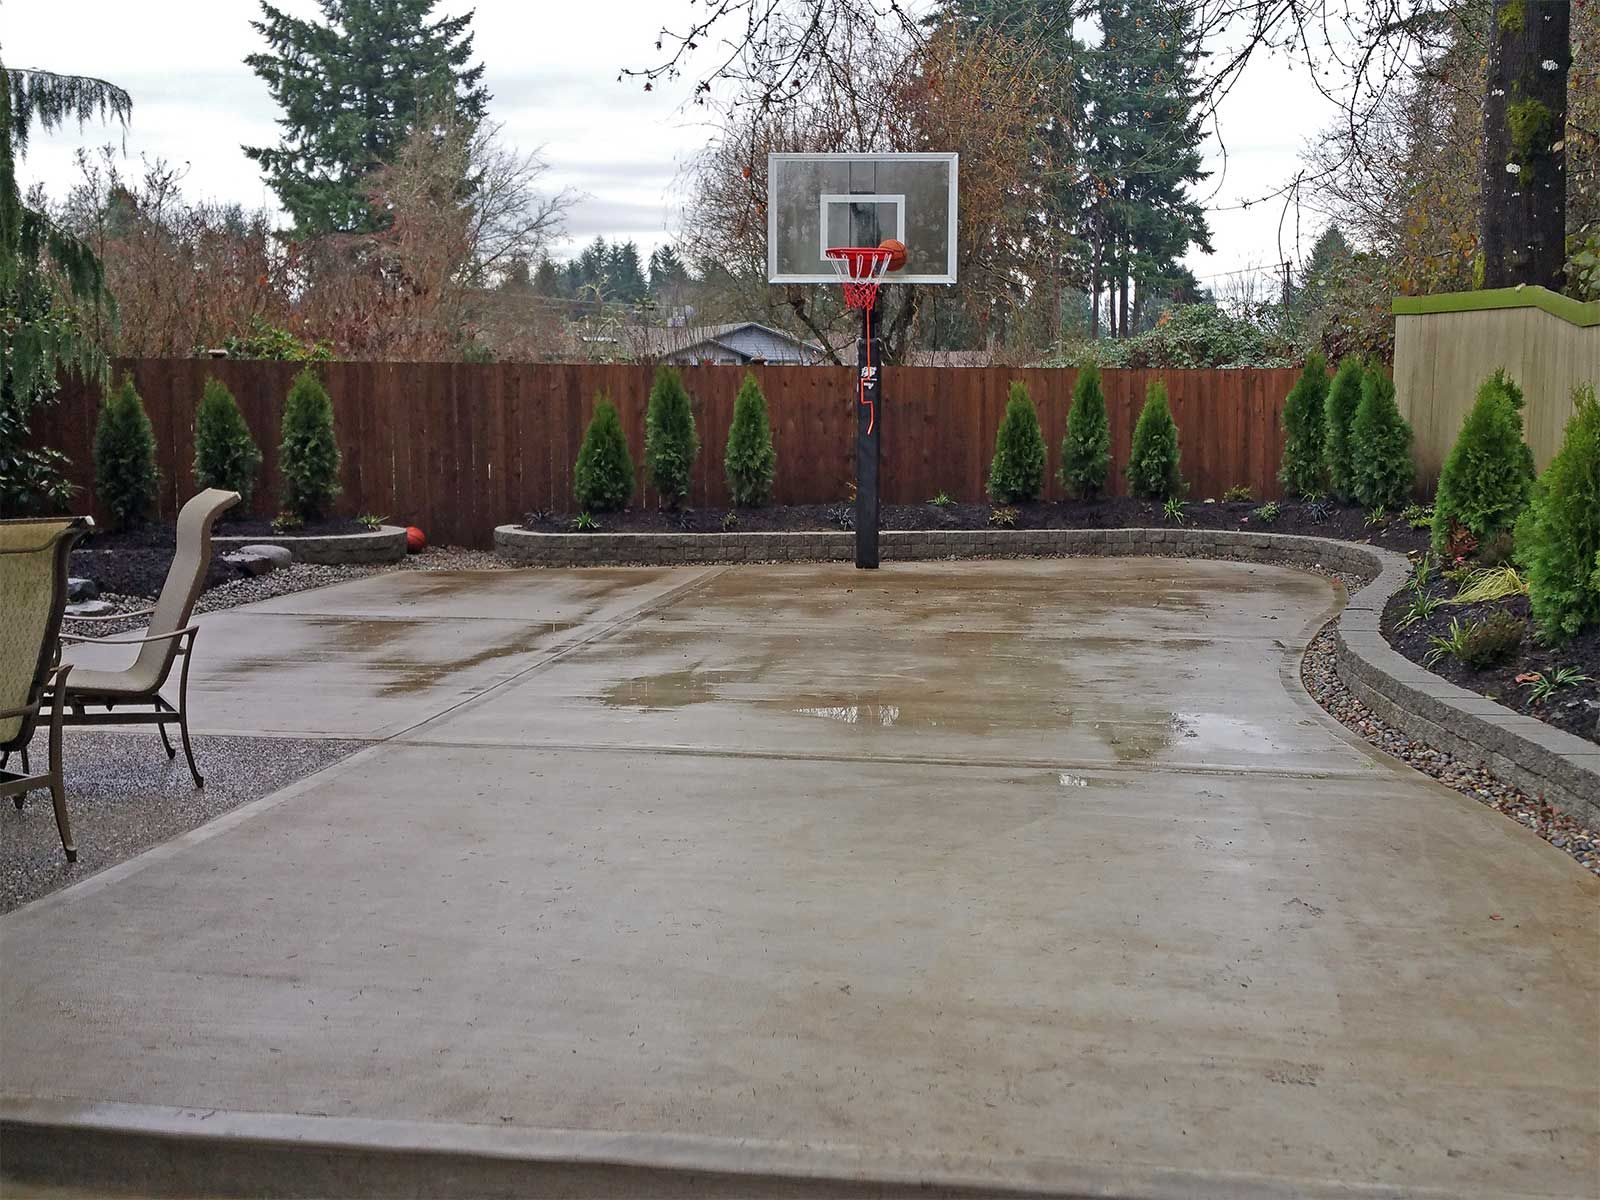 Concrete Backyard Landscaping Design the concrete slab basketball court is great exercise for the whole